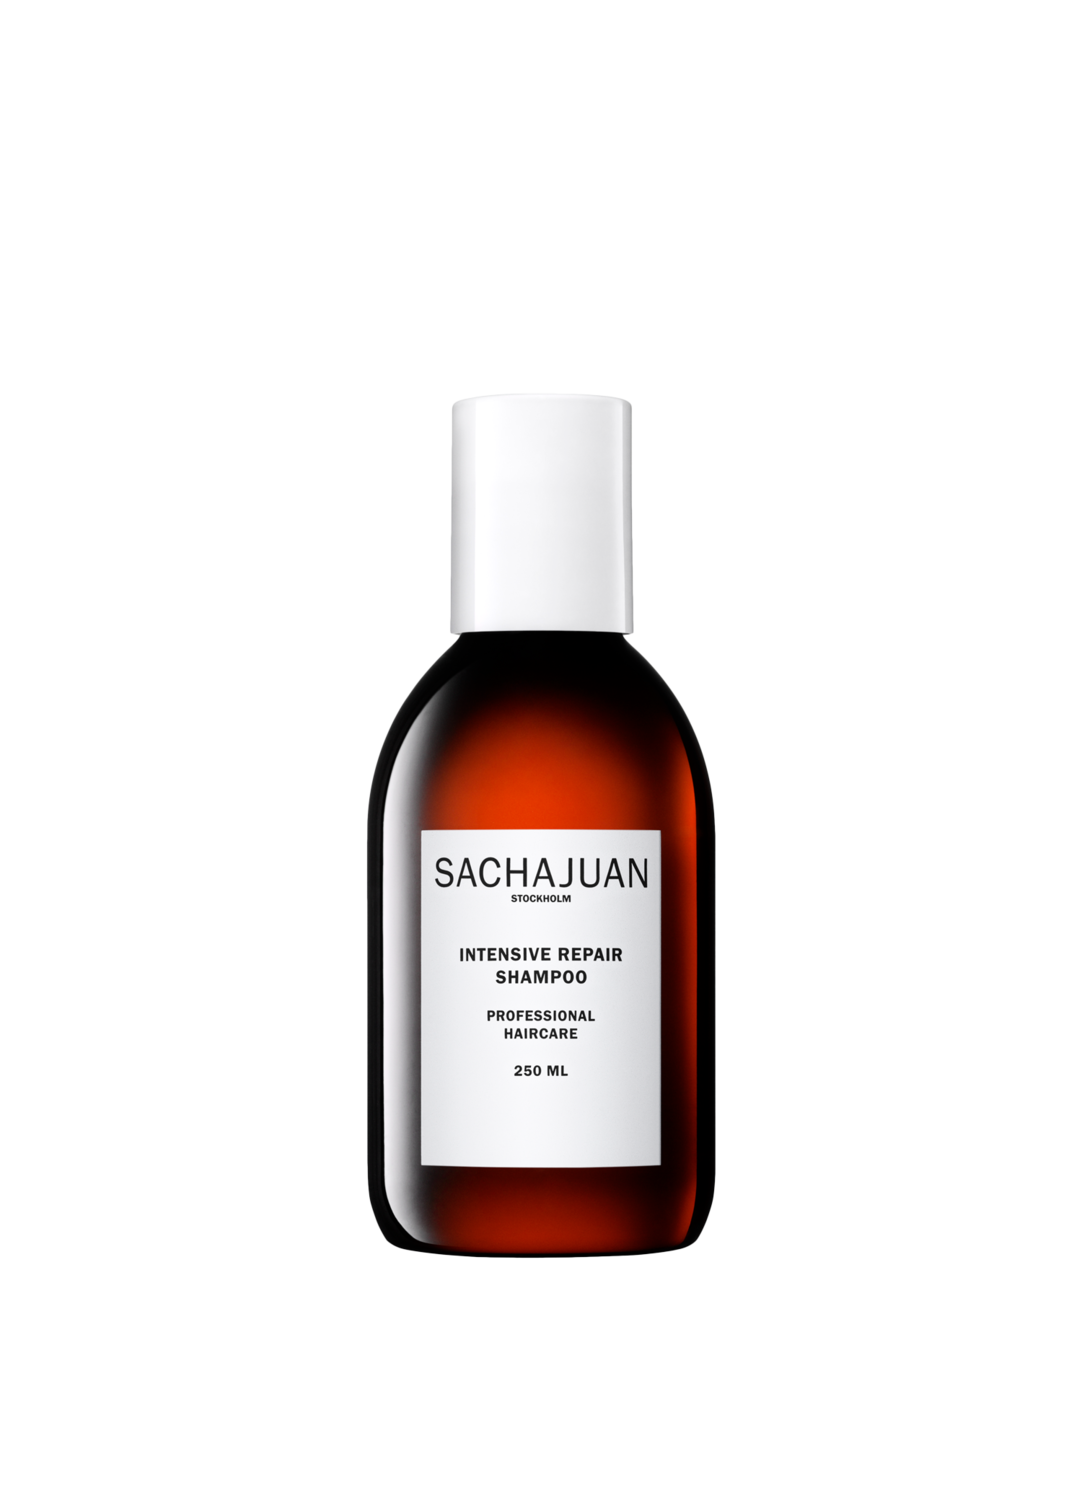 sachajuan | intensive repair shampoo[product_type ]sachajuan - Kiss and Makeup